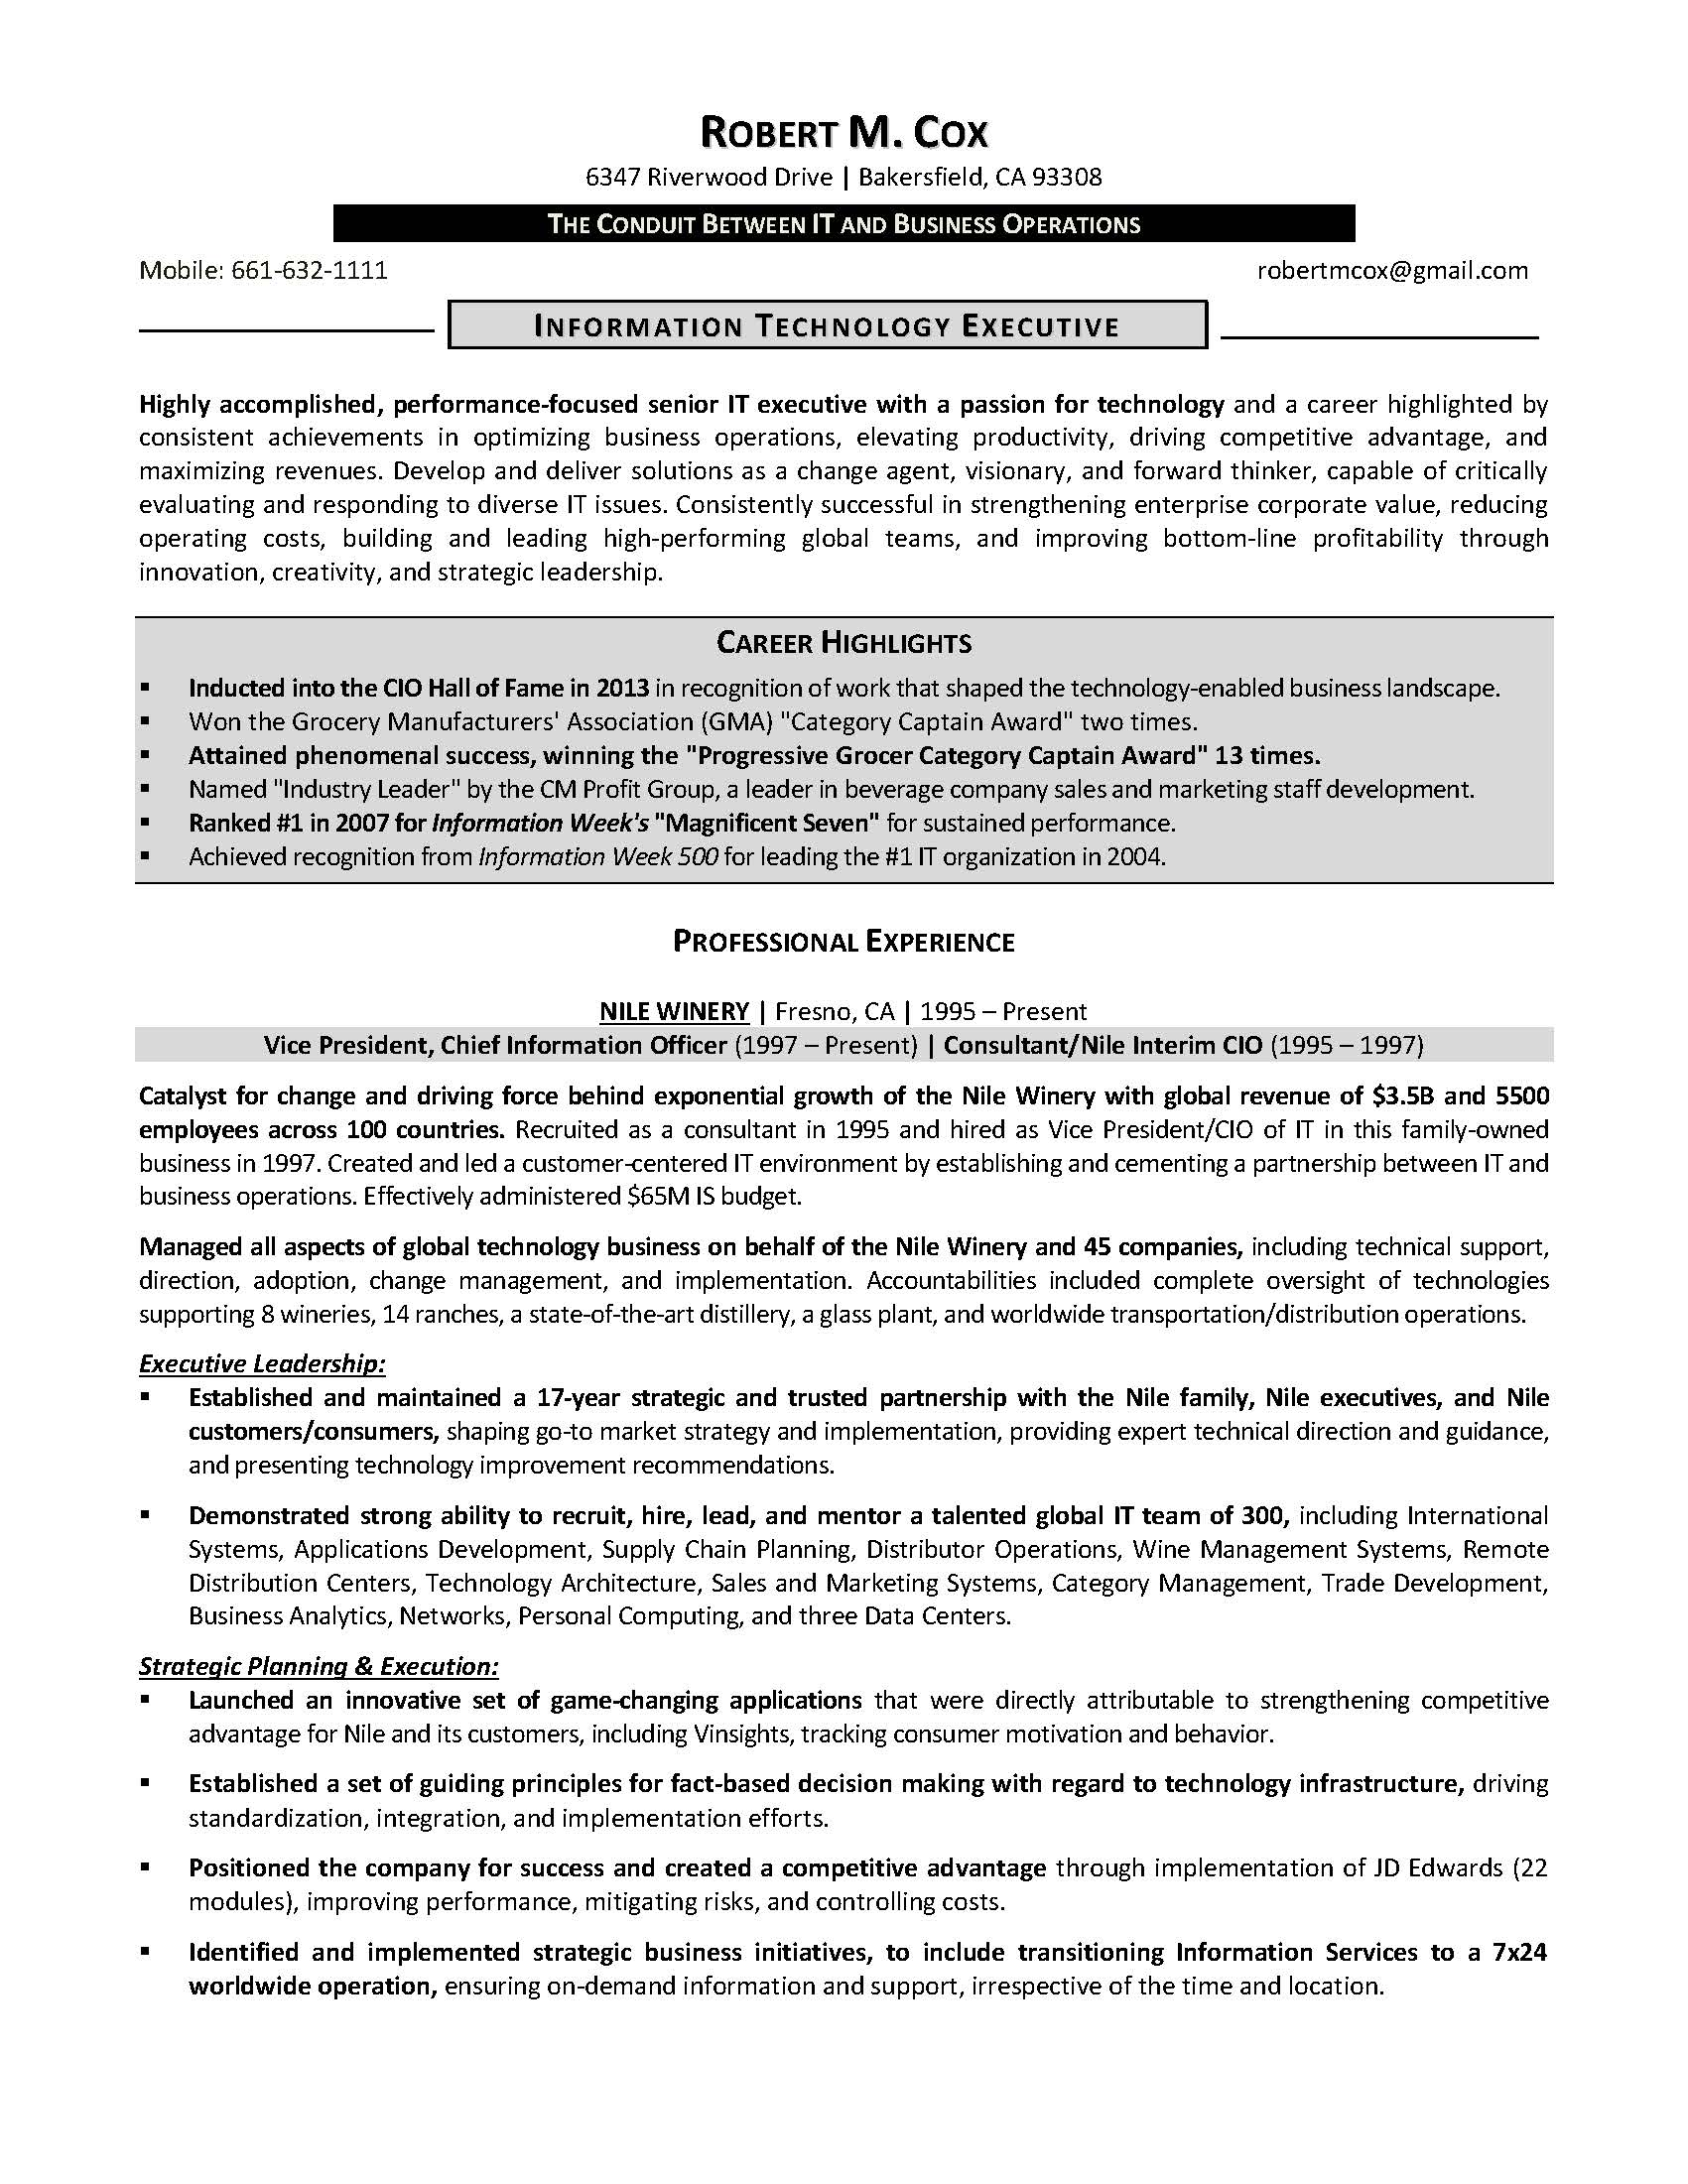 Resume Senior Management Resume Templates senior manager resume level it template executive management s management